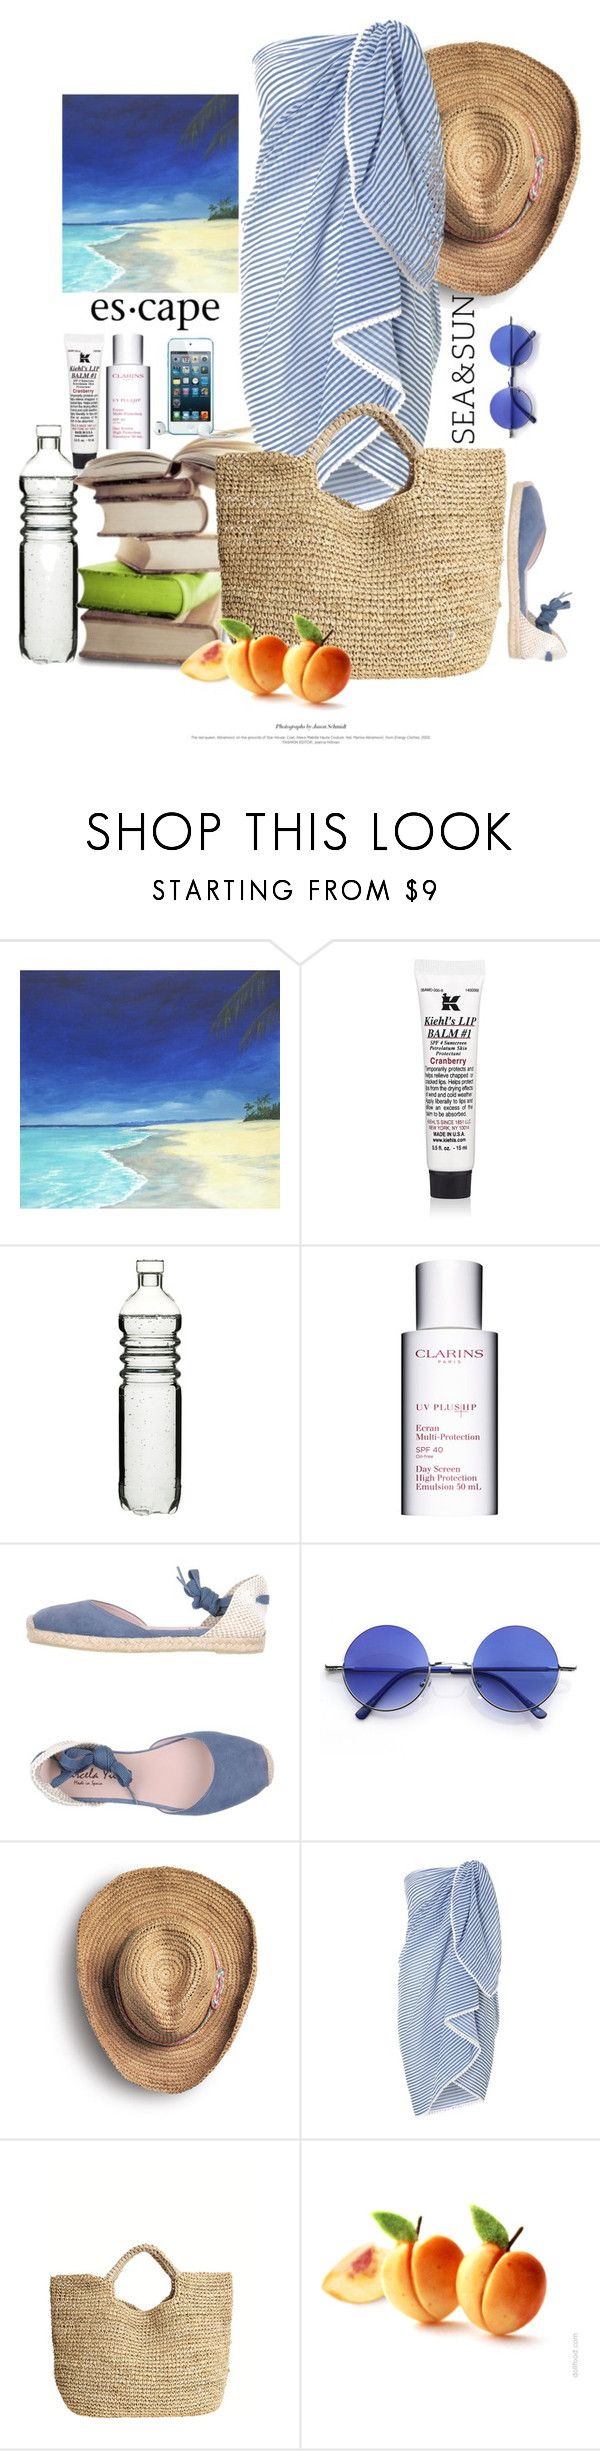 """La Plage / The Beach"" by halfmoonrun ❤ liked on Polyvore featuring Kiehl's, Sagaform, Clarins, Marcela Yil, Retrò, Sperry, Dickins & Jones, Flora Bella, contest and TropicalVacation"